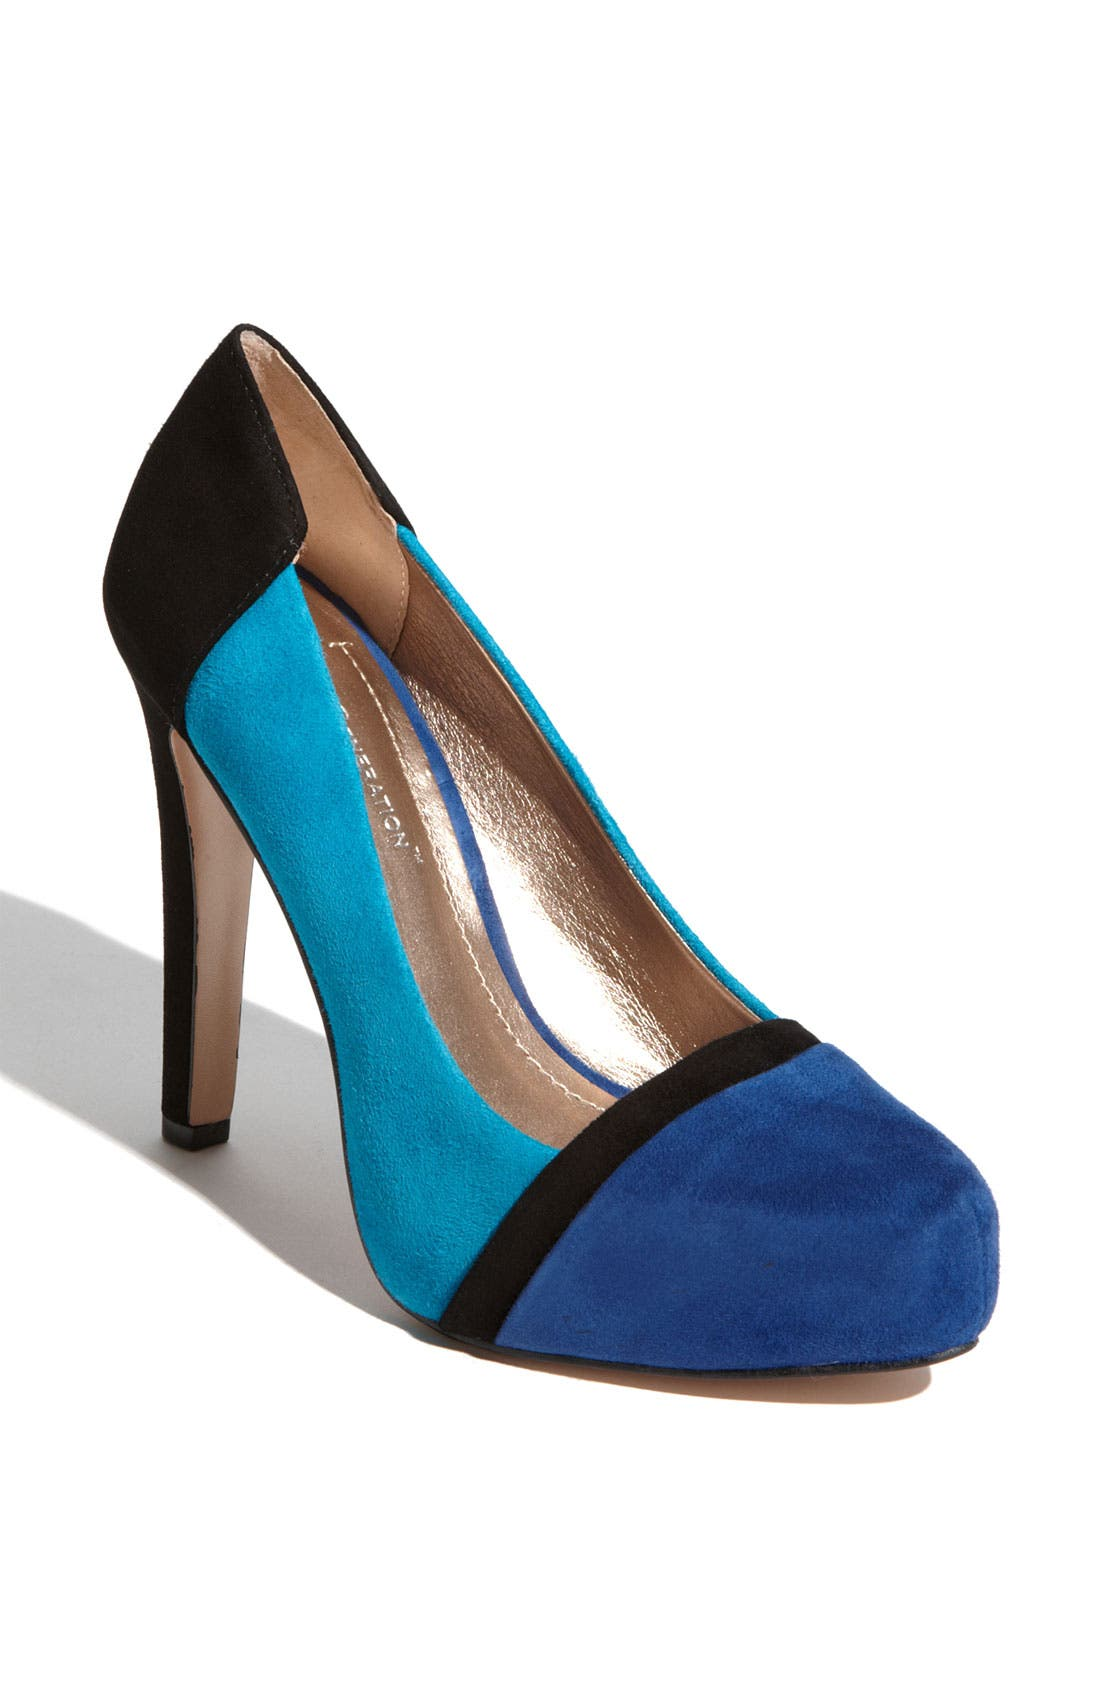 Main Image - BCBGeneration 'Perries' Pump